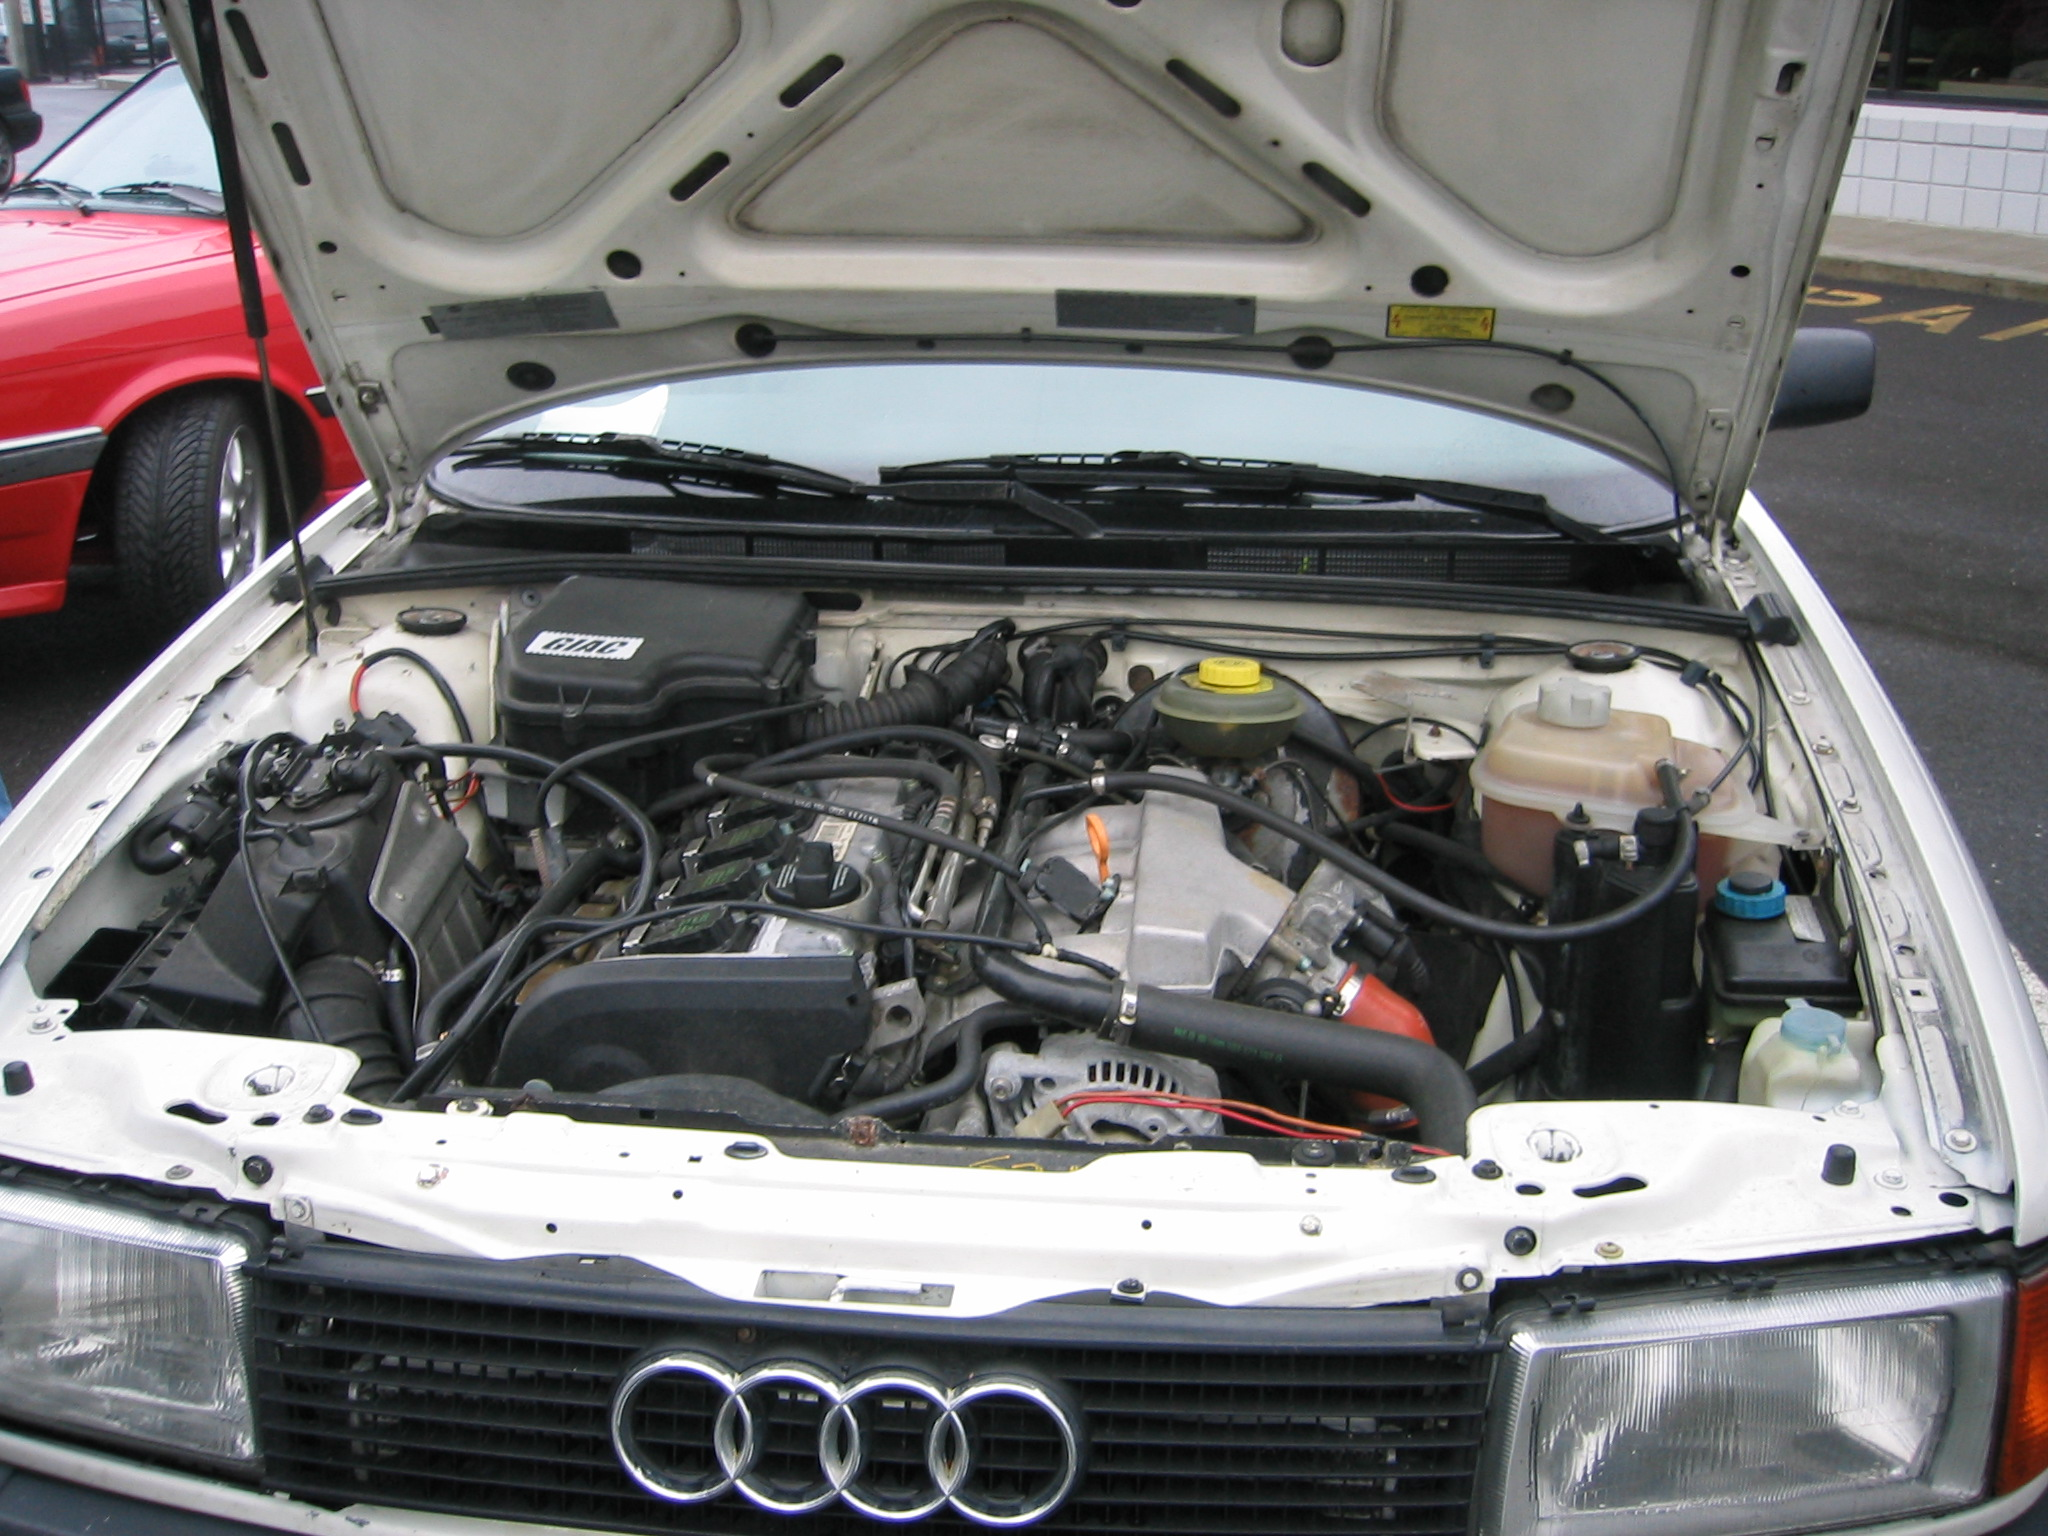 Cool Review About Audi 1.8t Engine with Amusing Gallery